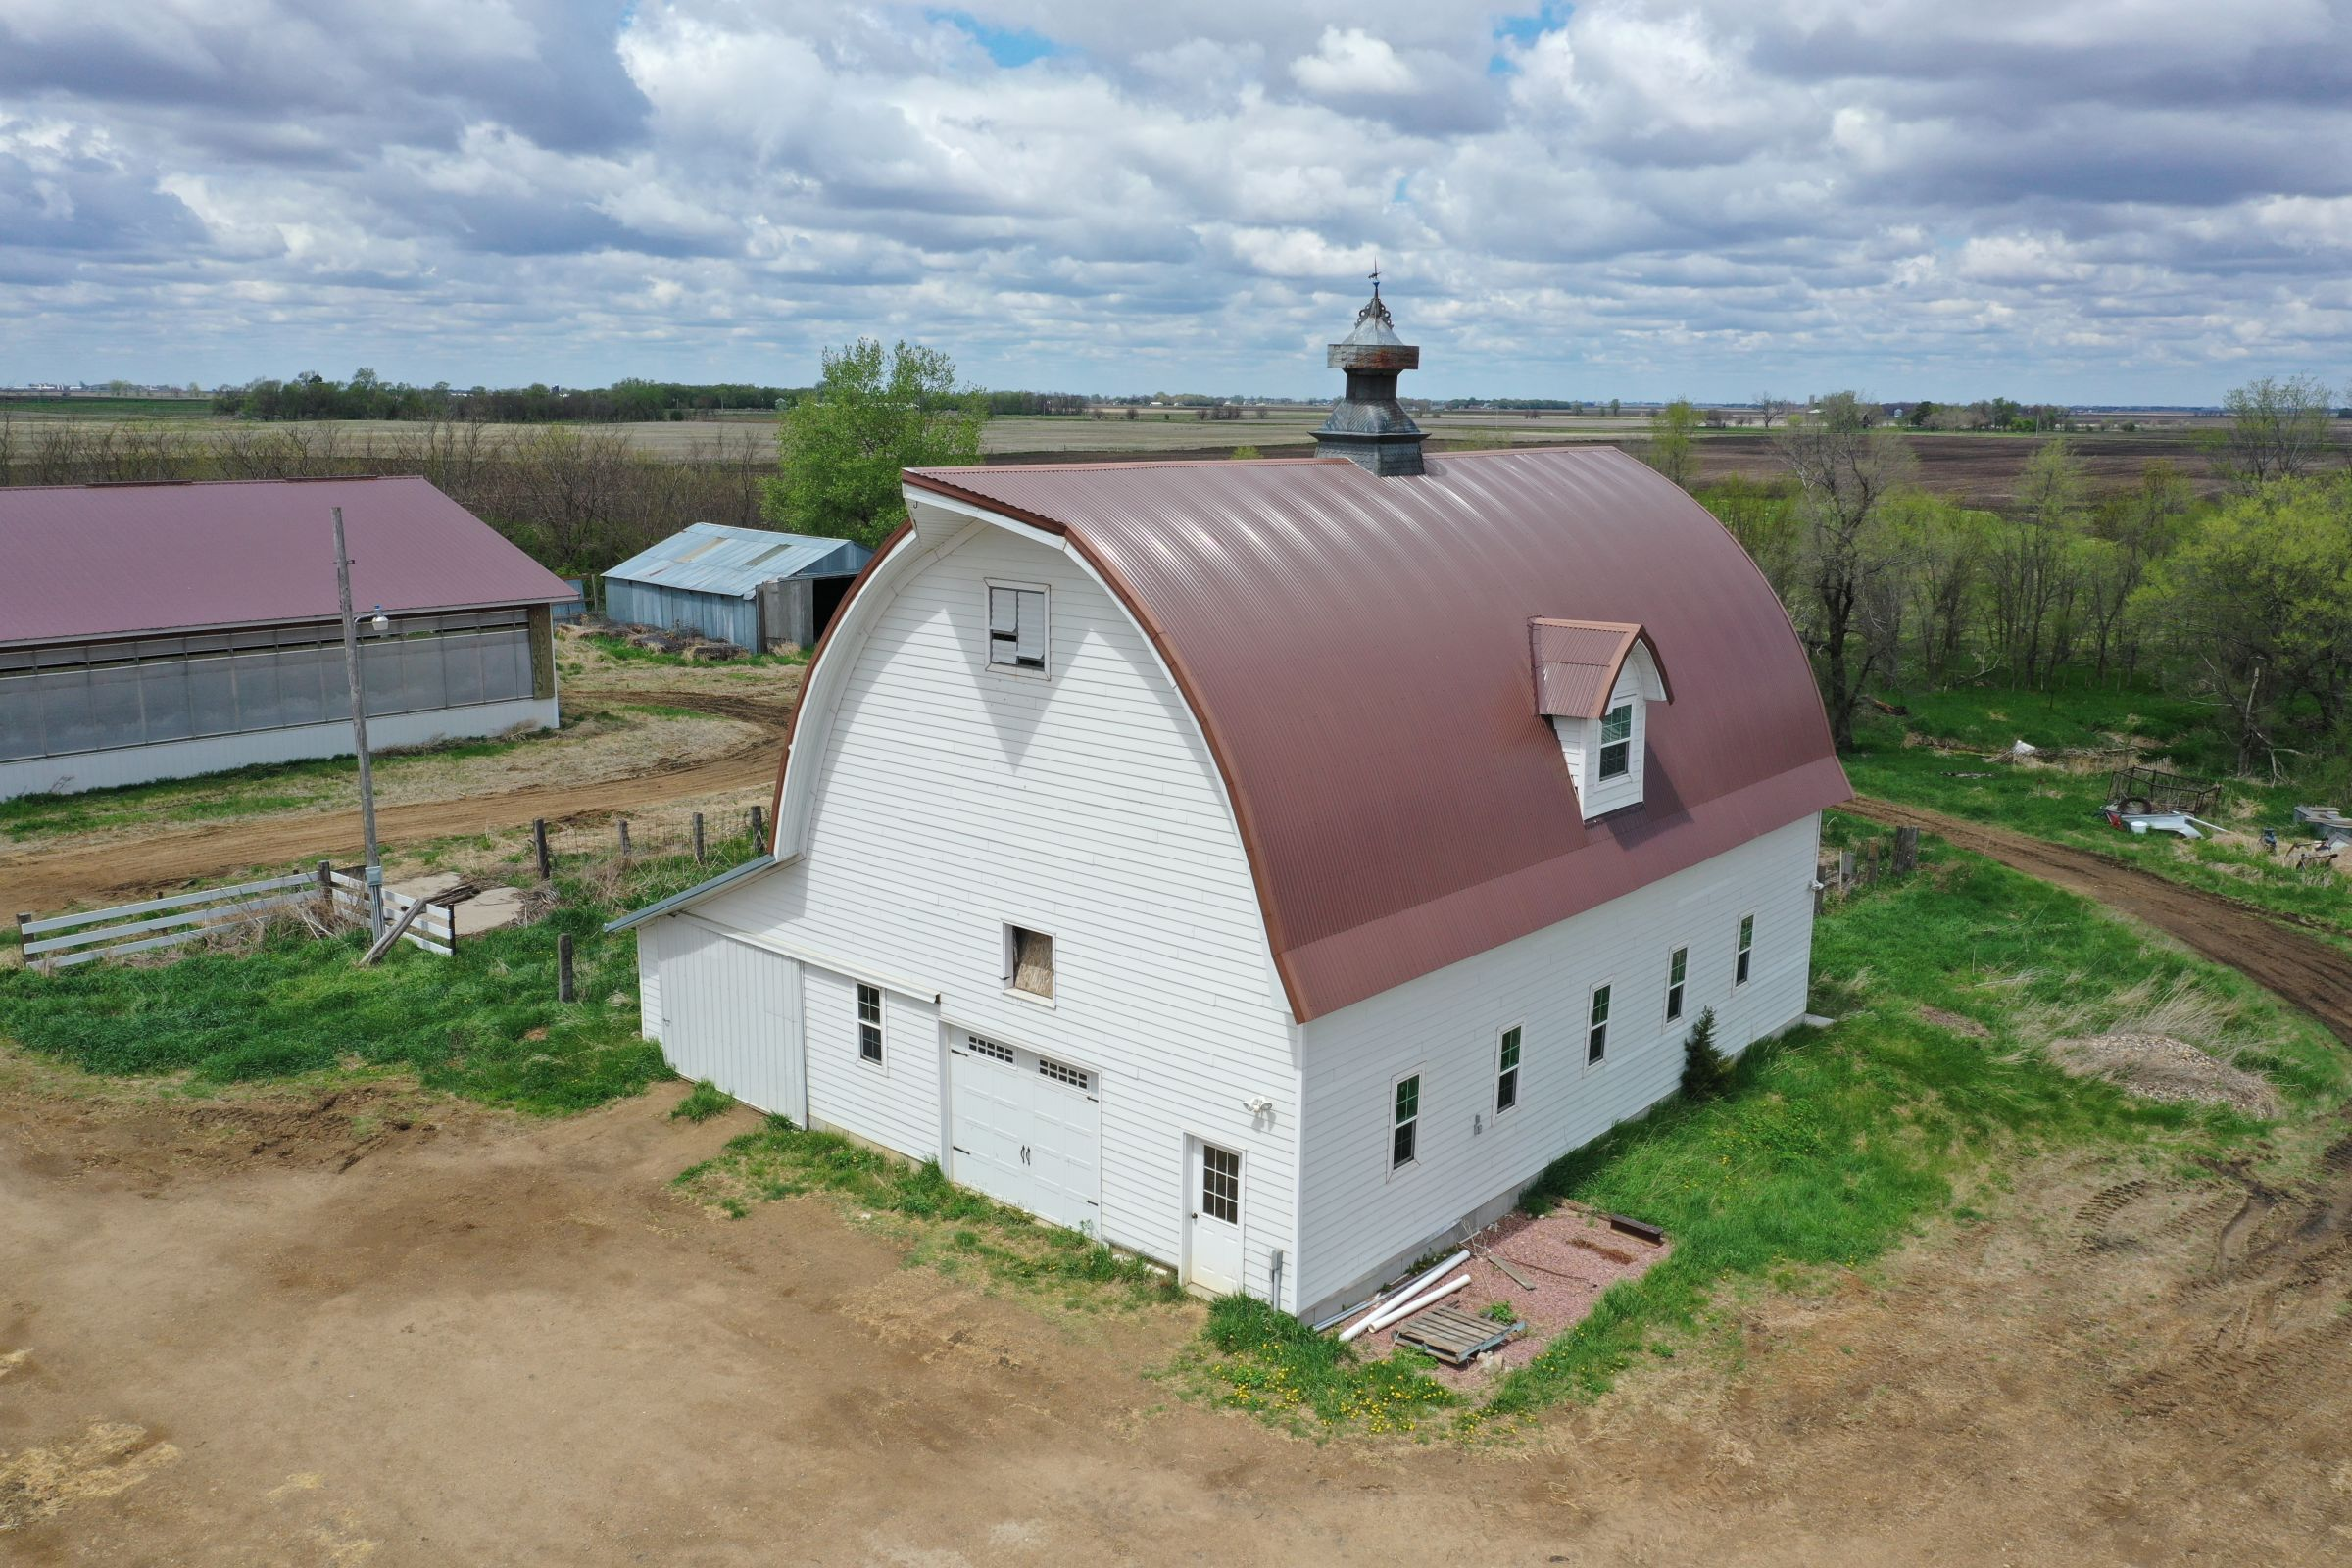 residential-auctions-land-turner-county-south-dakota-12-acres-listing-number-14971-2-2020-06-02-160626.JPG